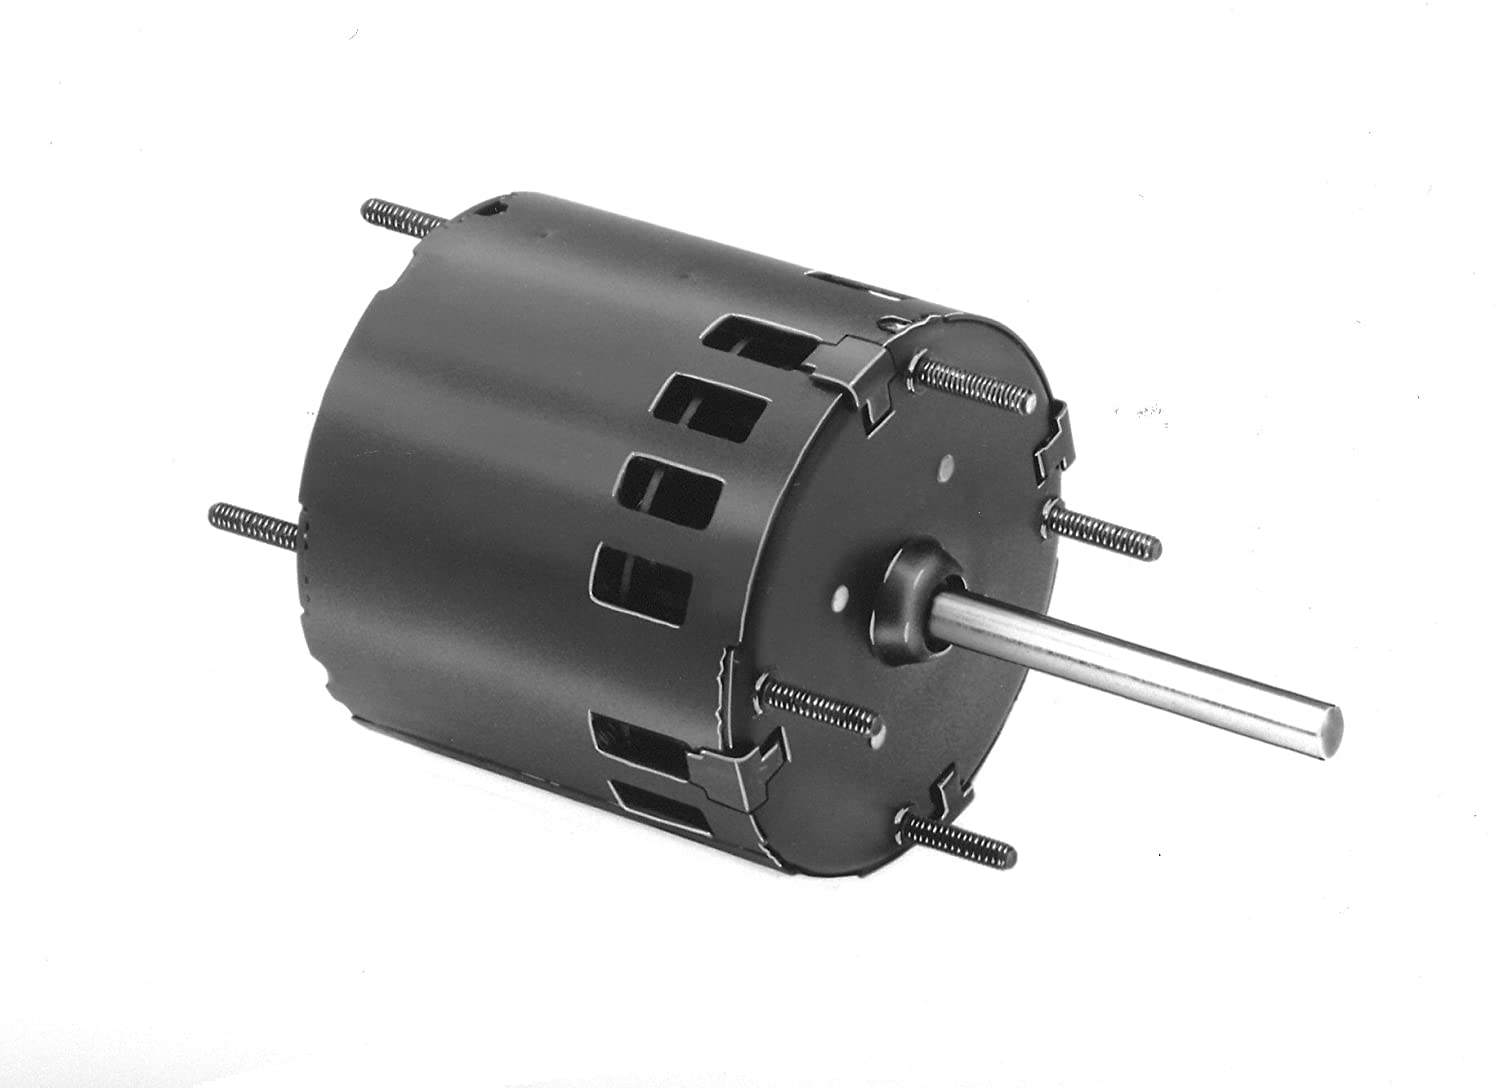 Fasco D169 3.3-Inch Frame Open Ventilated Shaded Pole Self Cooled Motor with  Sleeve Bearing, 1/70HP, 1500RPM, 115V, 60Hz, 0.7 Amps, CCW Rotation